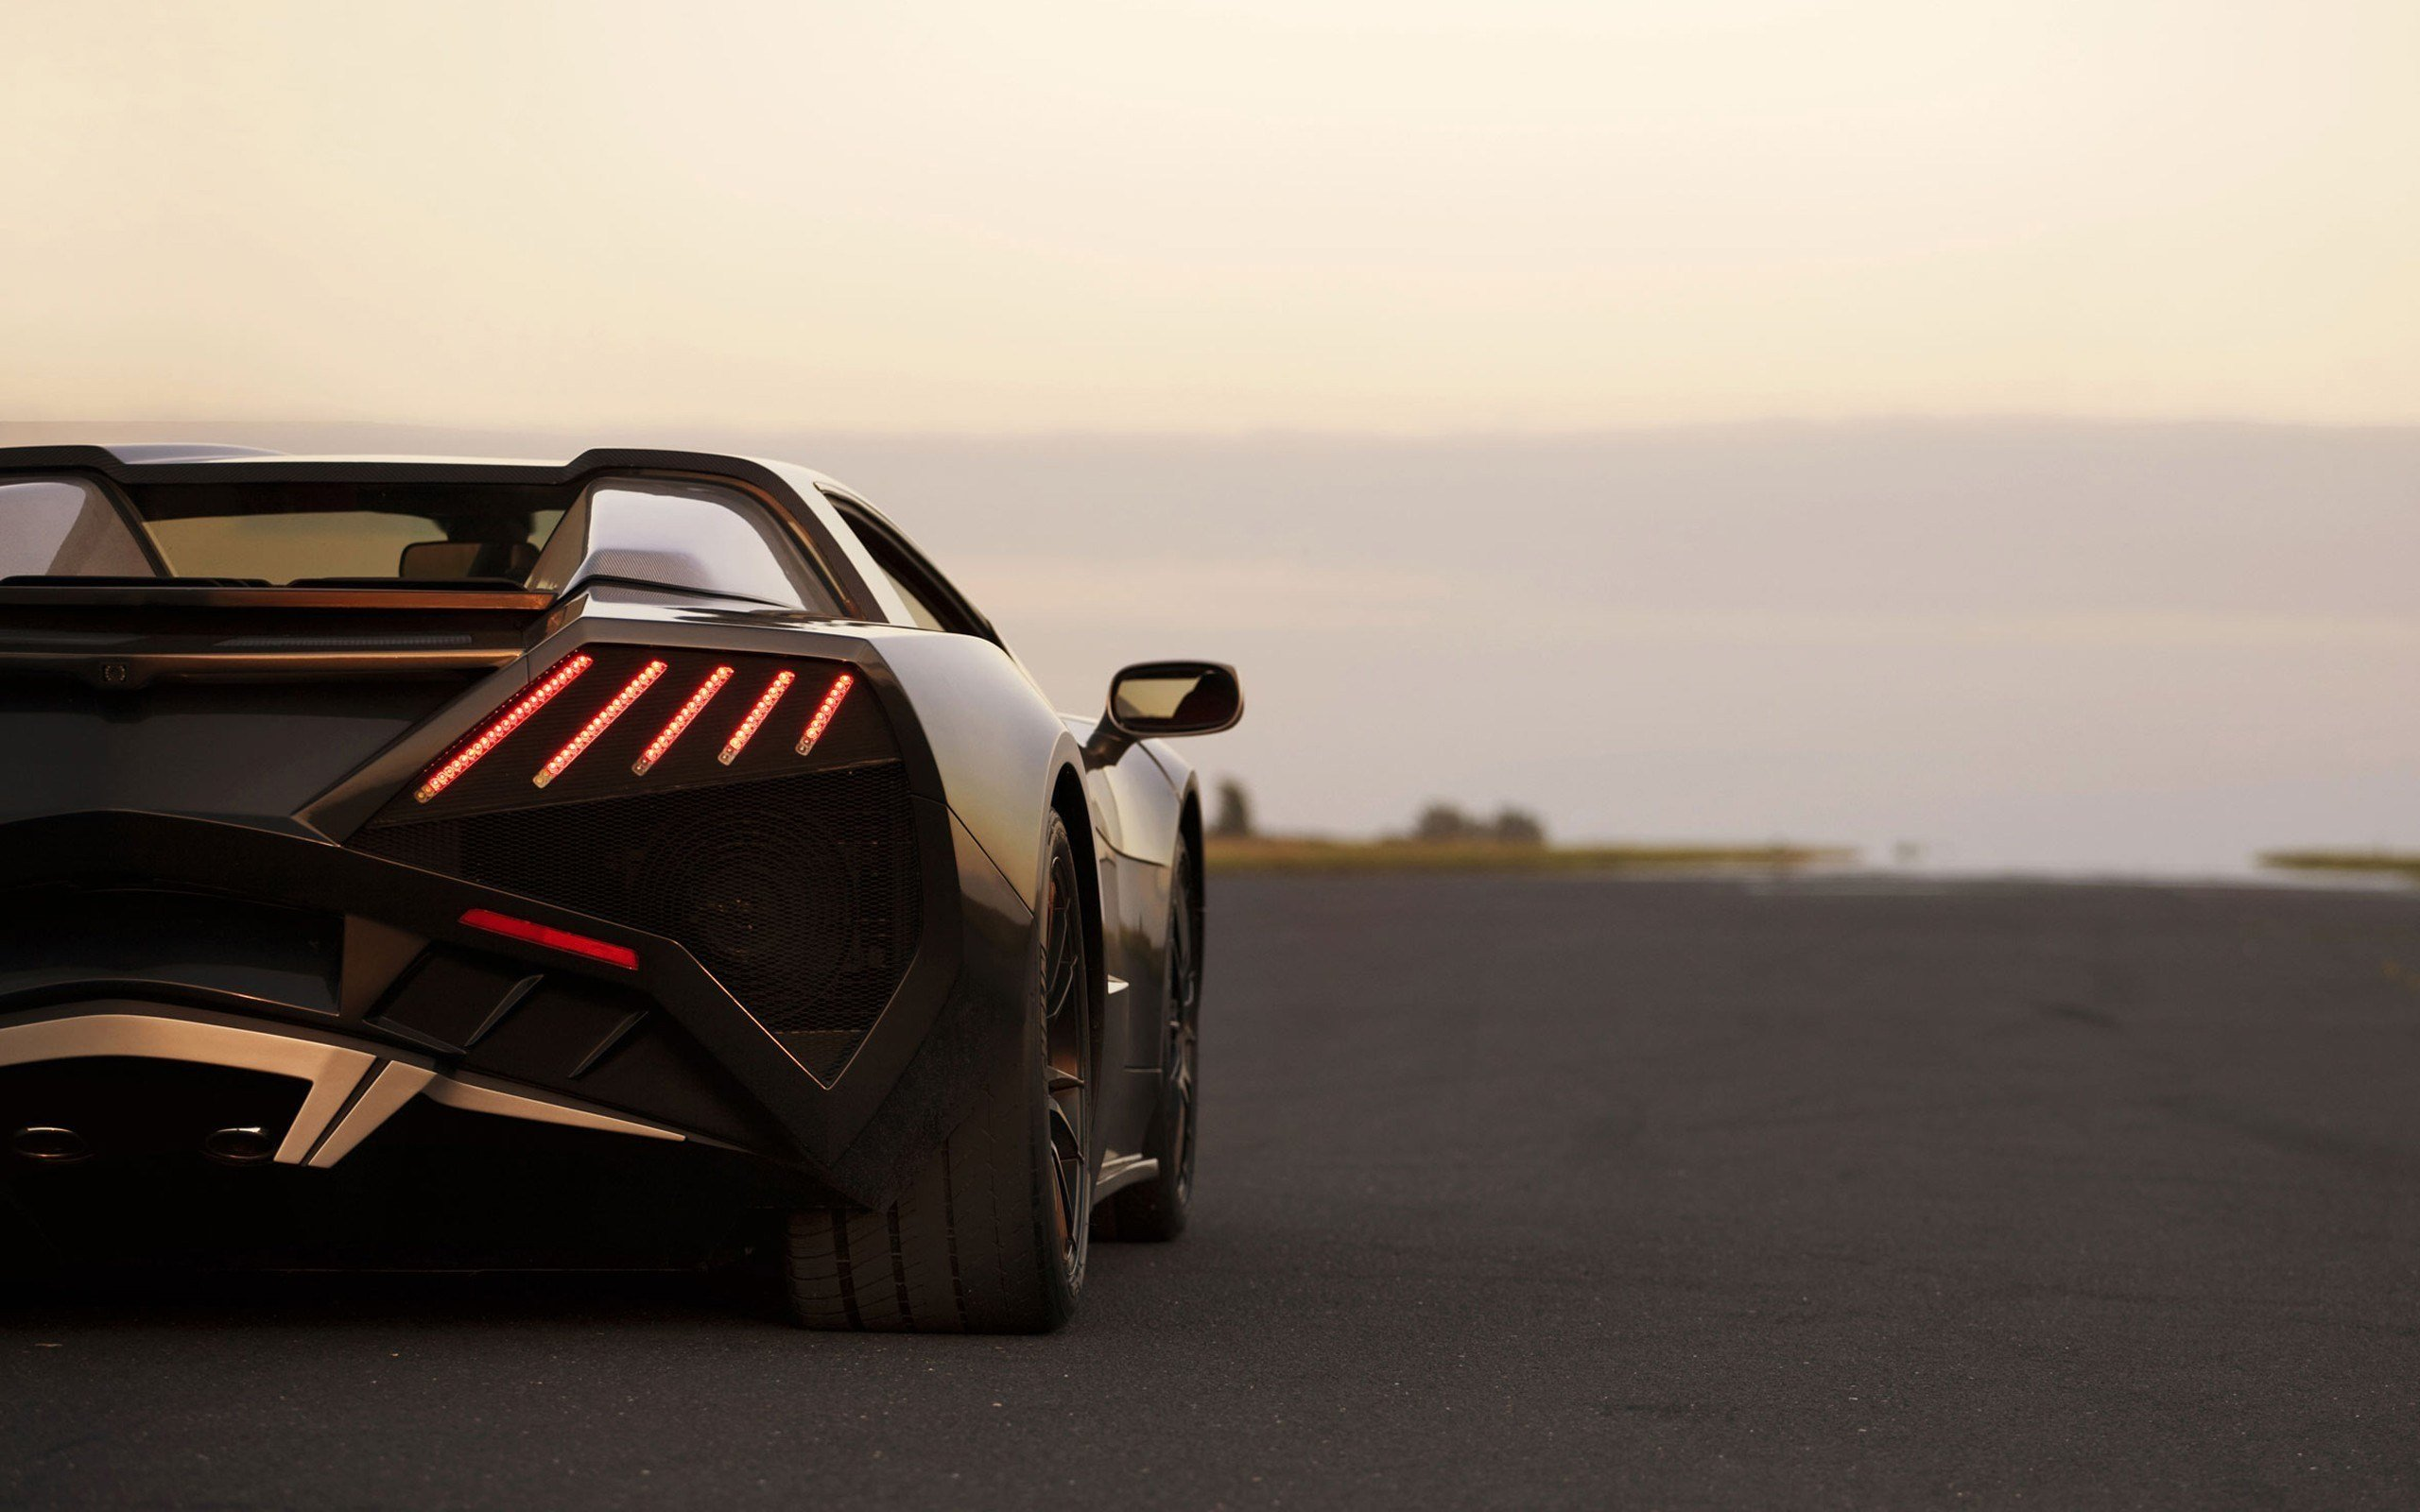 New Cars Polish Arrinera Rear View Taillights Wallpaper On This Month